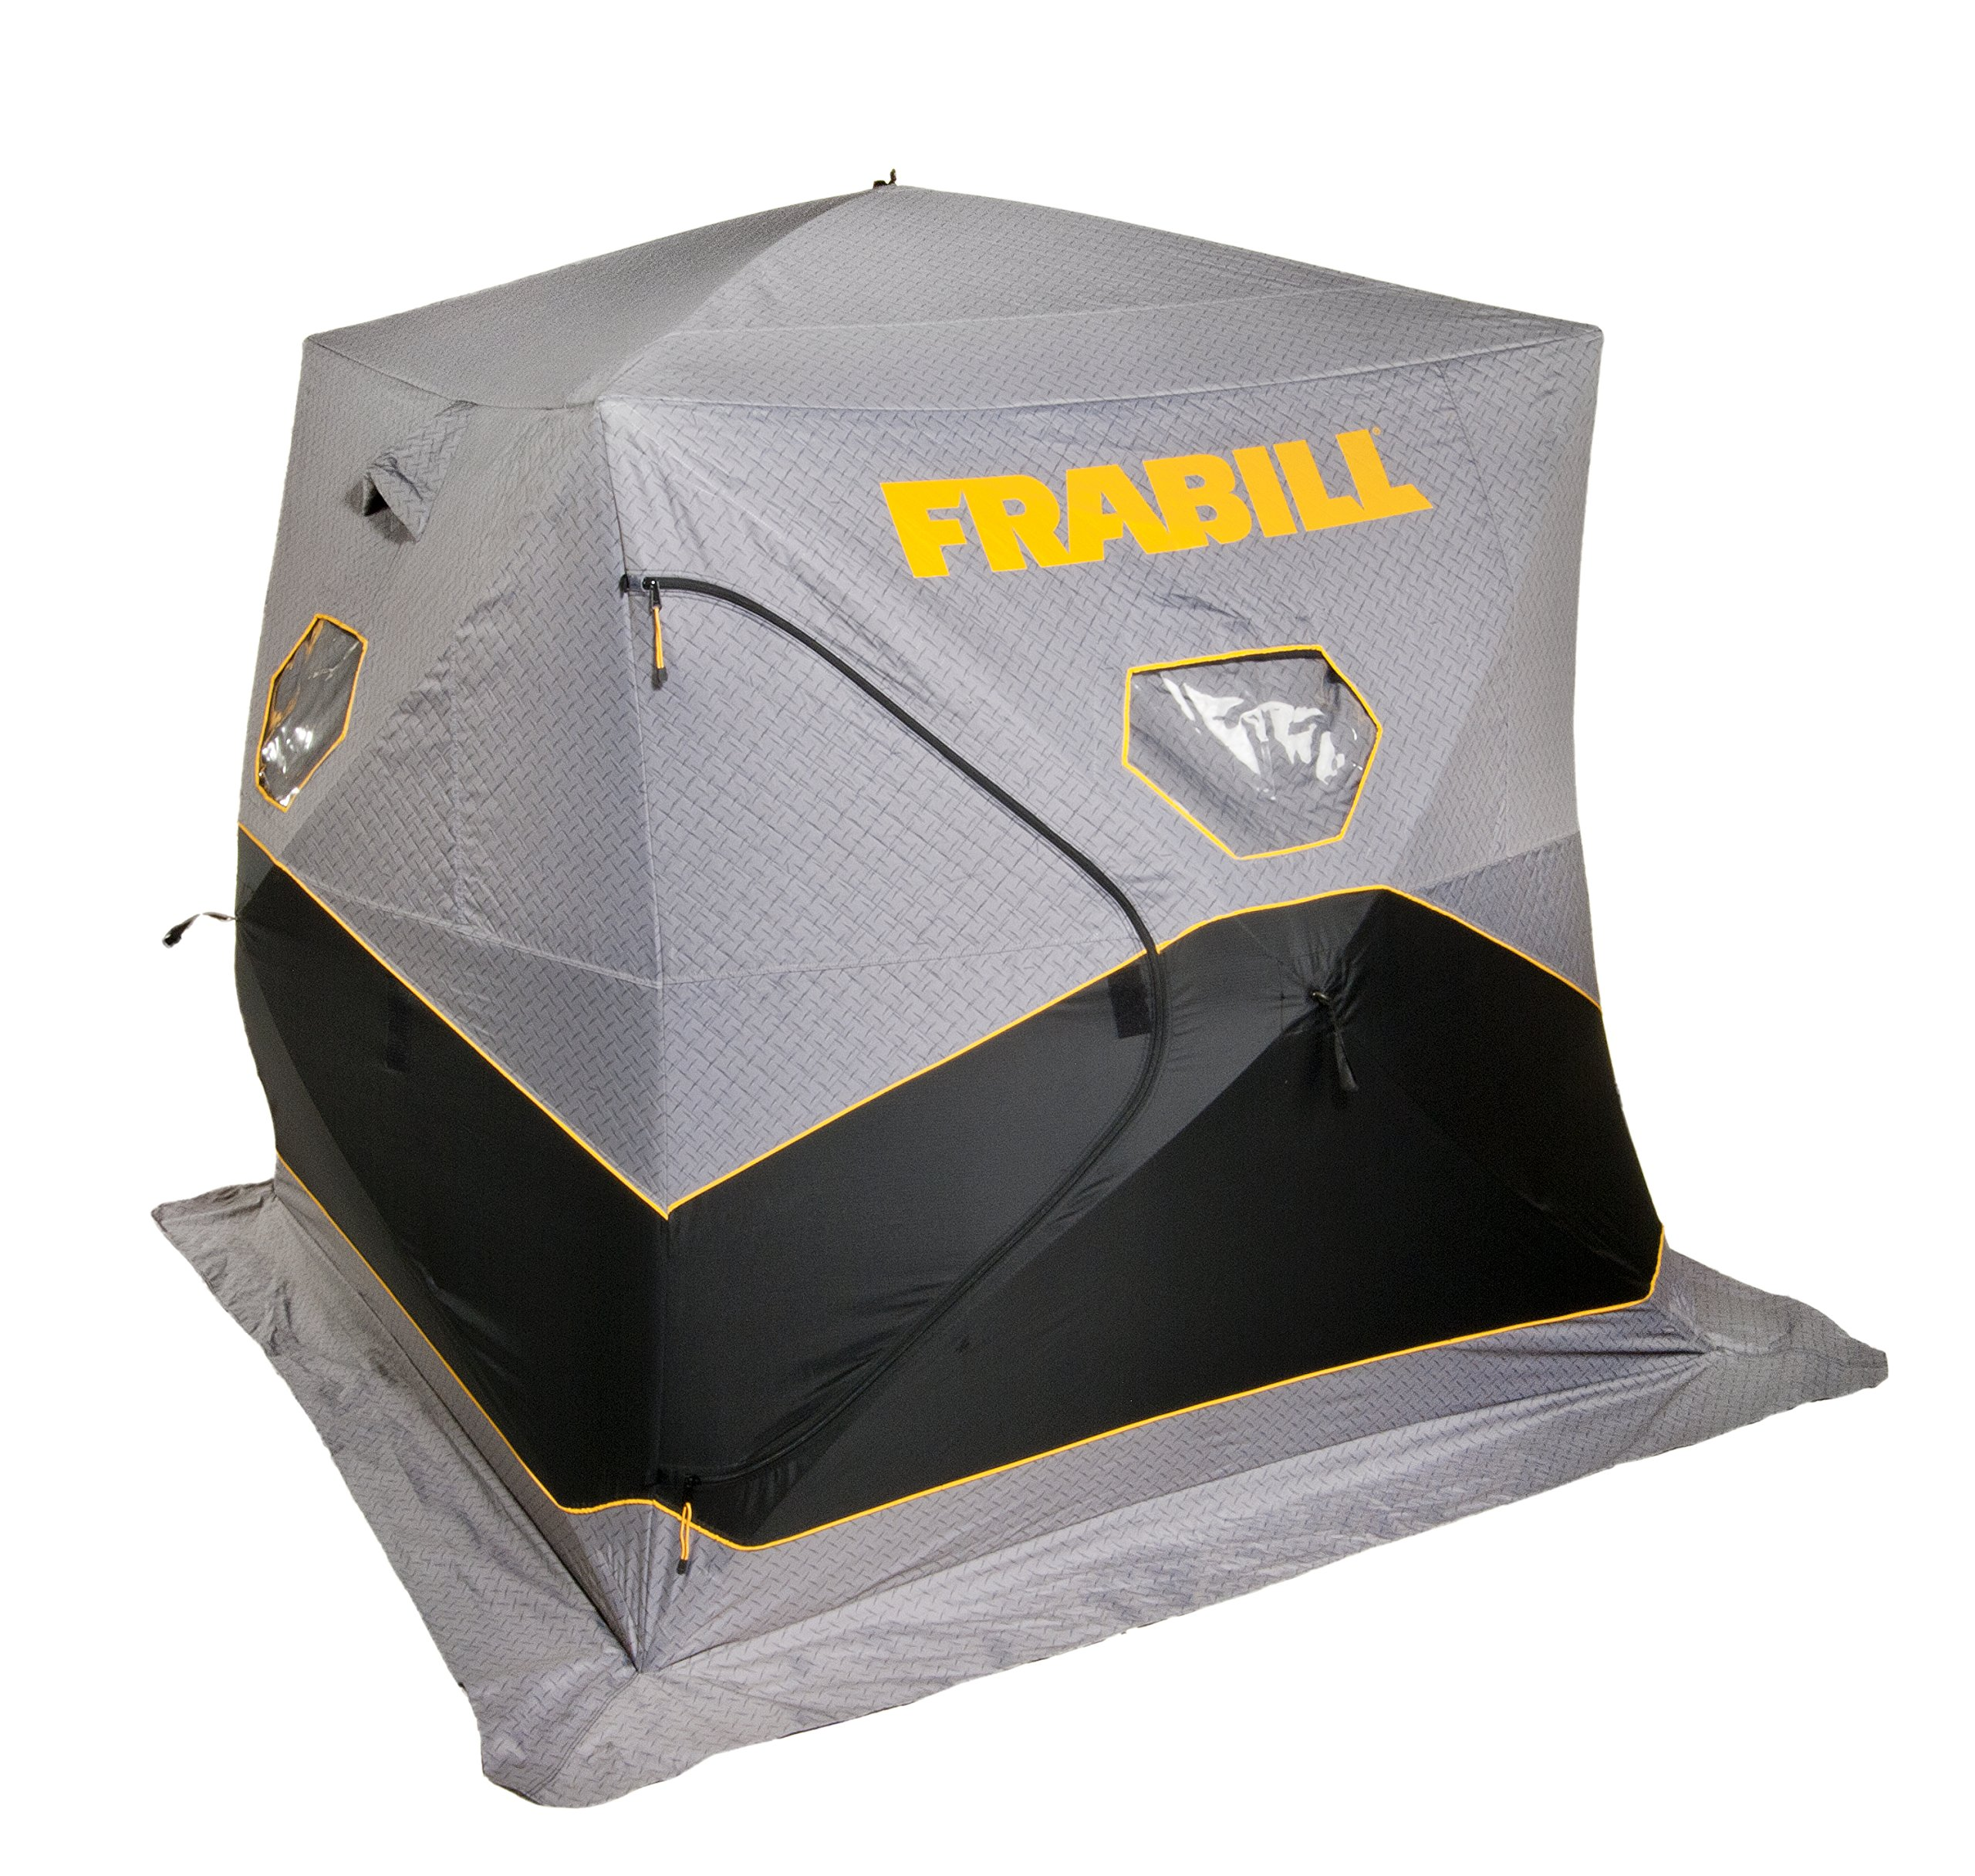 Frabill Bunker 210 Hub Top Insulated 2 - 3 Man Shelter by Frabill